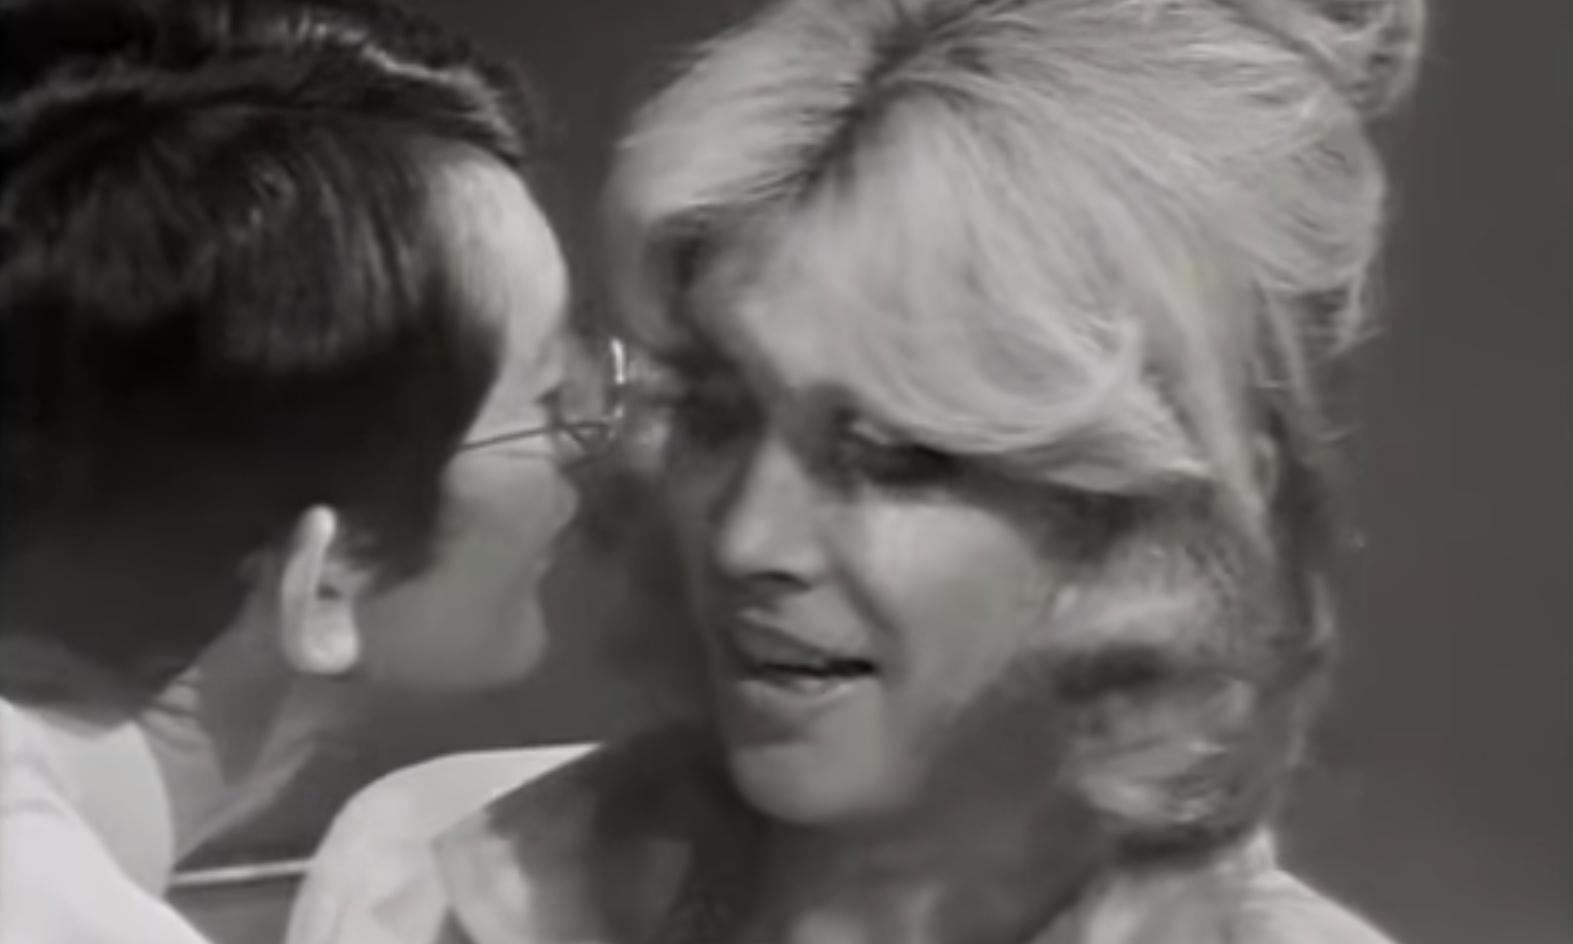 With Number 96, Australia brought queer people to TV decades before anyone else